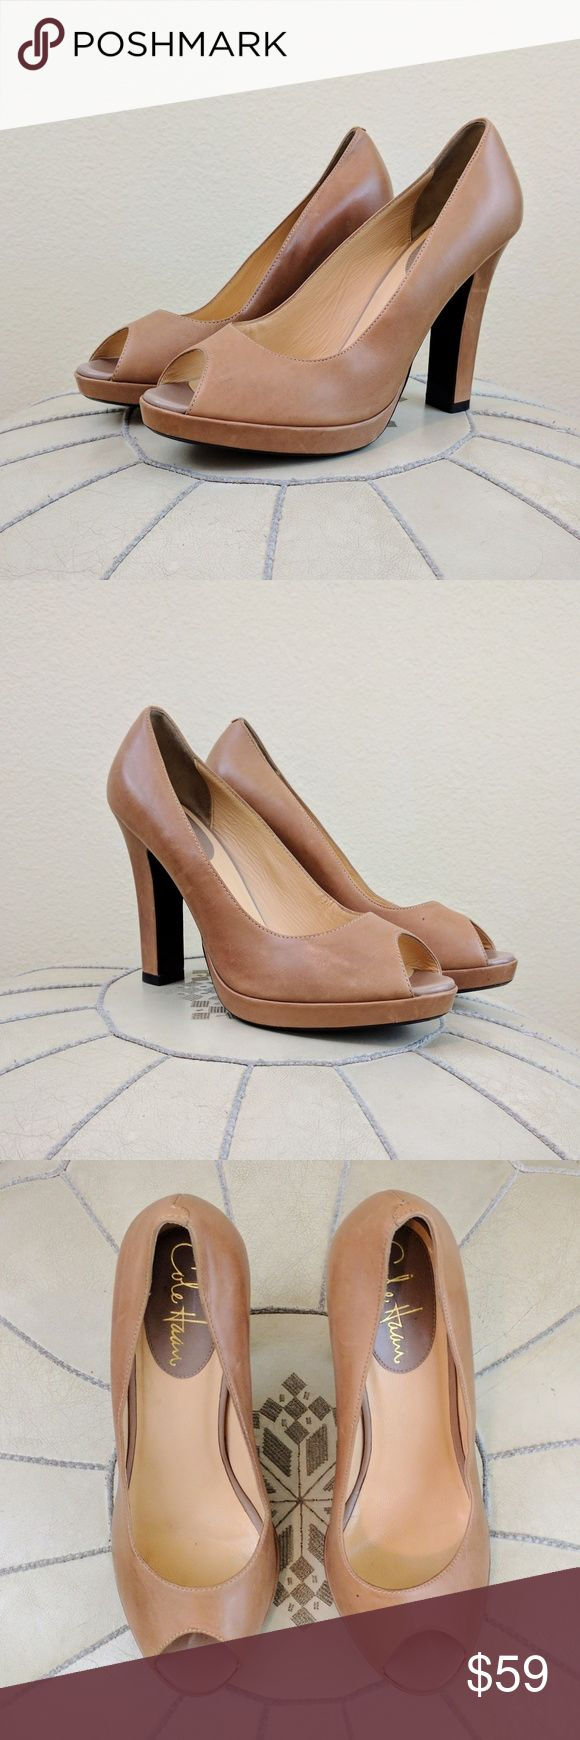 """Cole Haan Peep Toe Platform Neutral Pumps Sz 7.5 These classic peep toe high heels from Cole Haan feature a stacked heel that measures approx 4"""" with a 1/2"""" platform. Camel color leather. Excellent condition. Sz 7.5 Cole Haan Shoes Heels"""